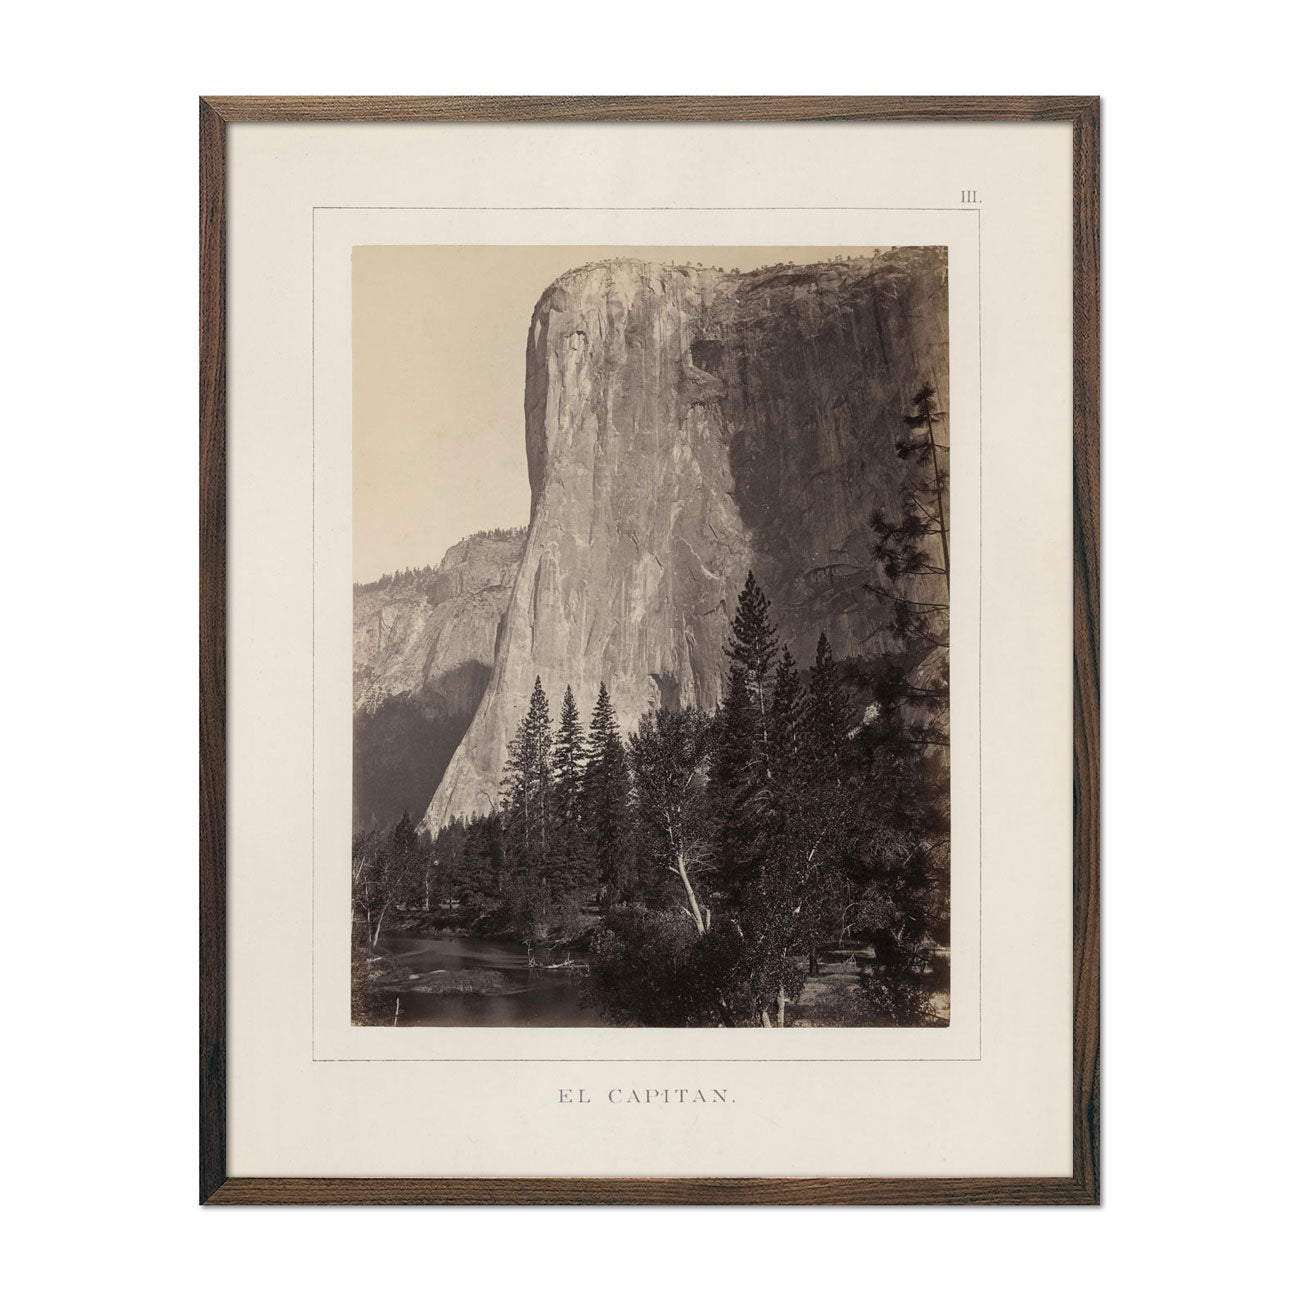 Photograph of El Capitan